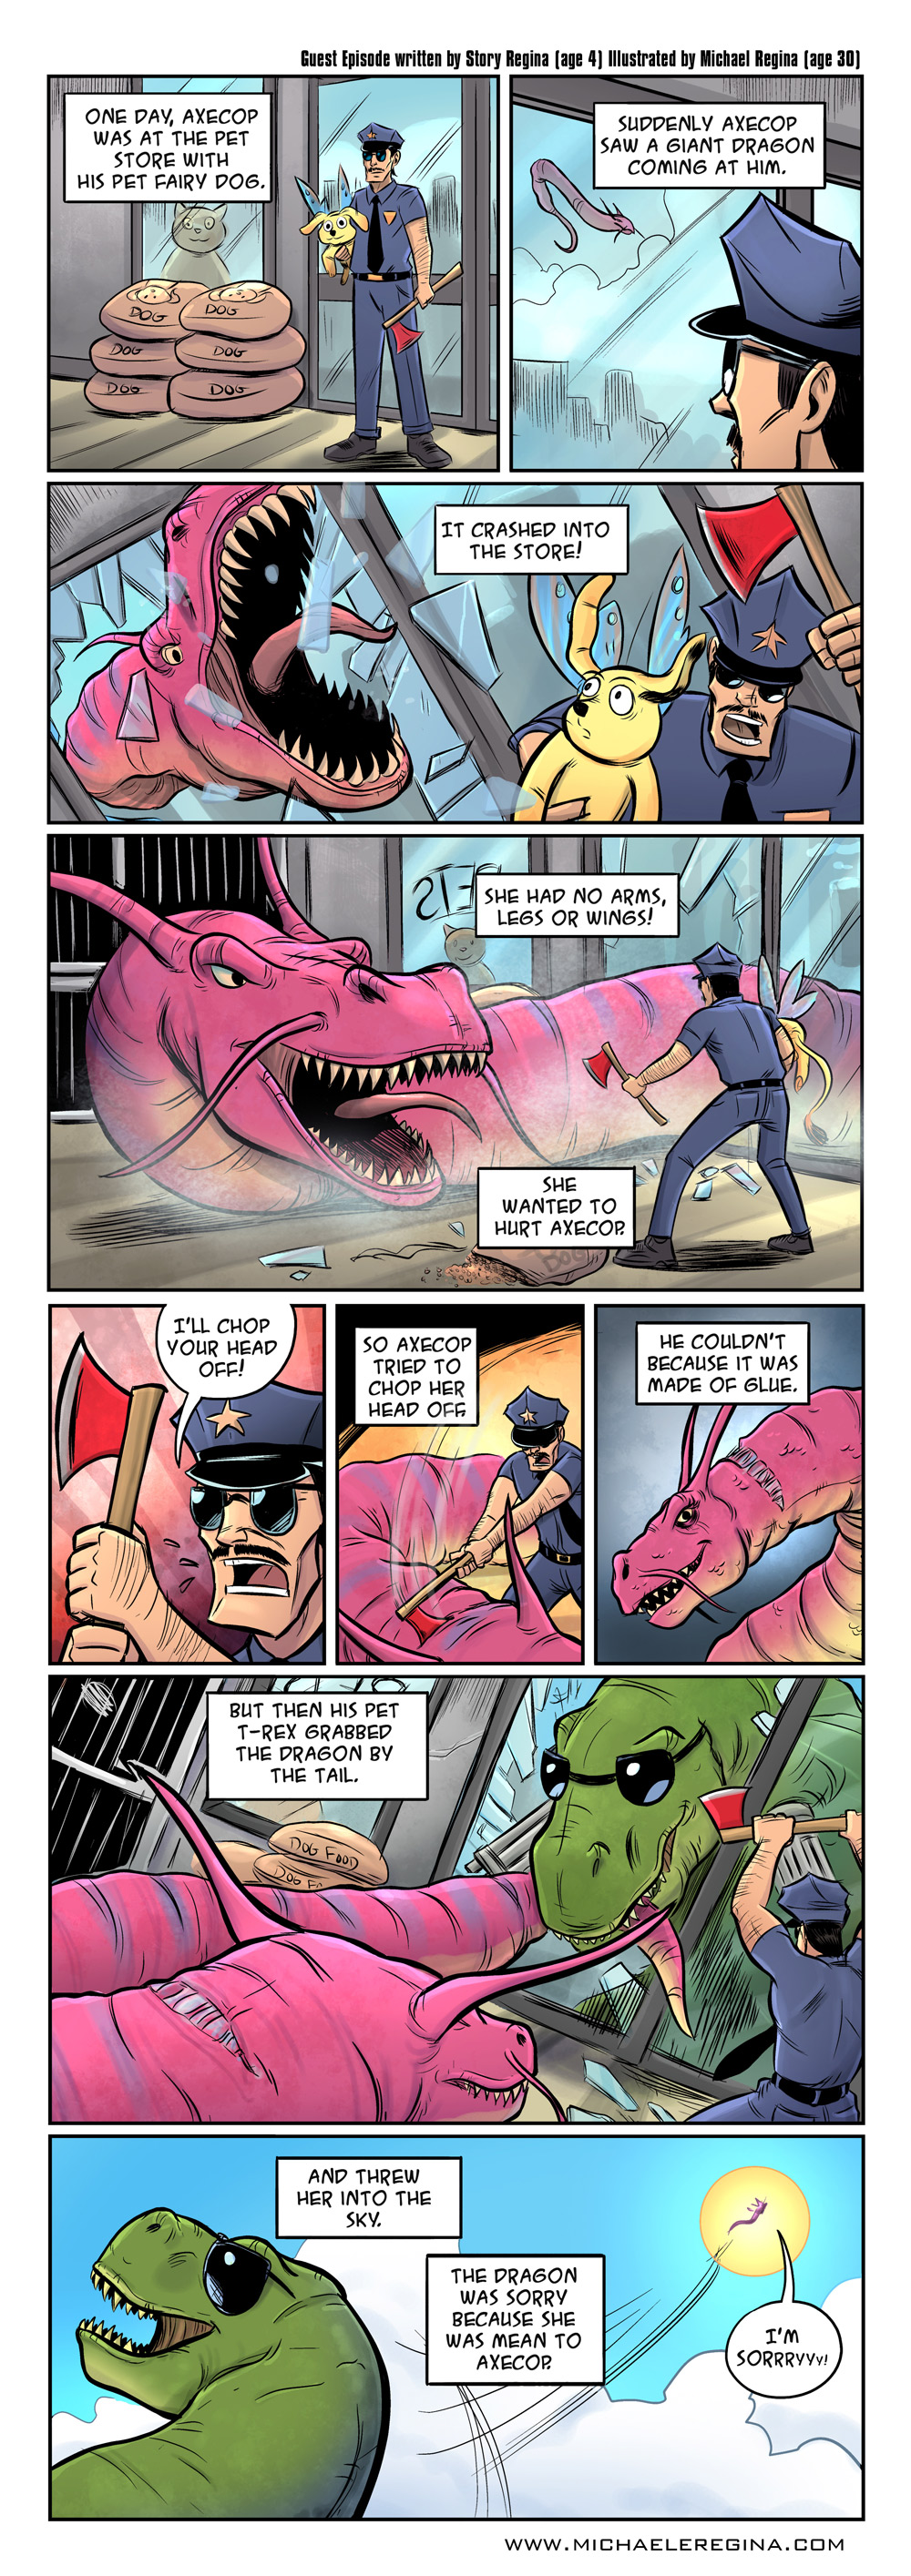 Axe Cop Guest Episode #39